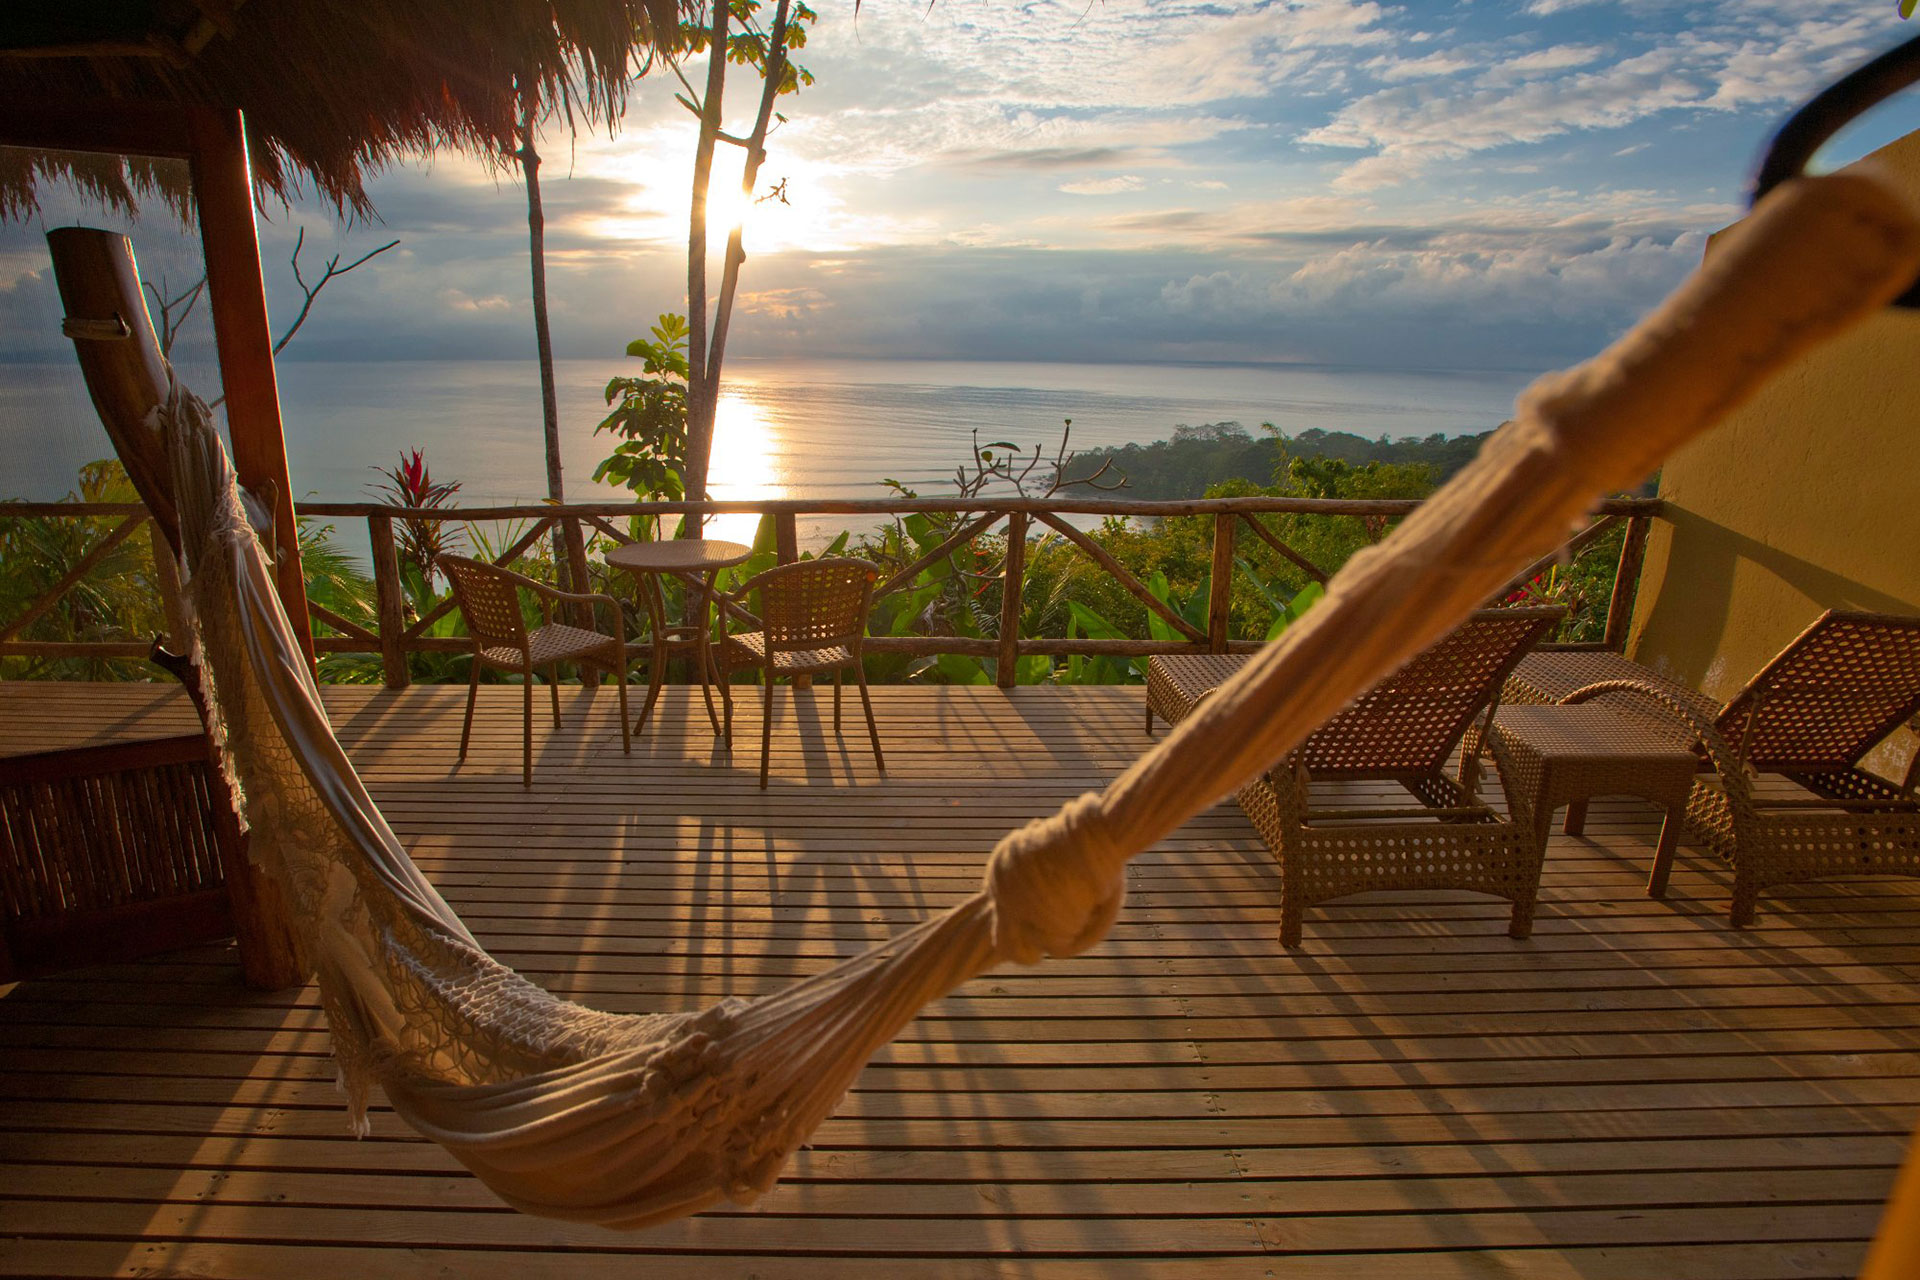 Sunset at Lapa Rios Ecolodge in Costa Rica; Courtesy of Lapa Rios Ecolodge